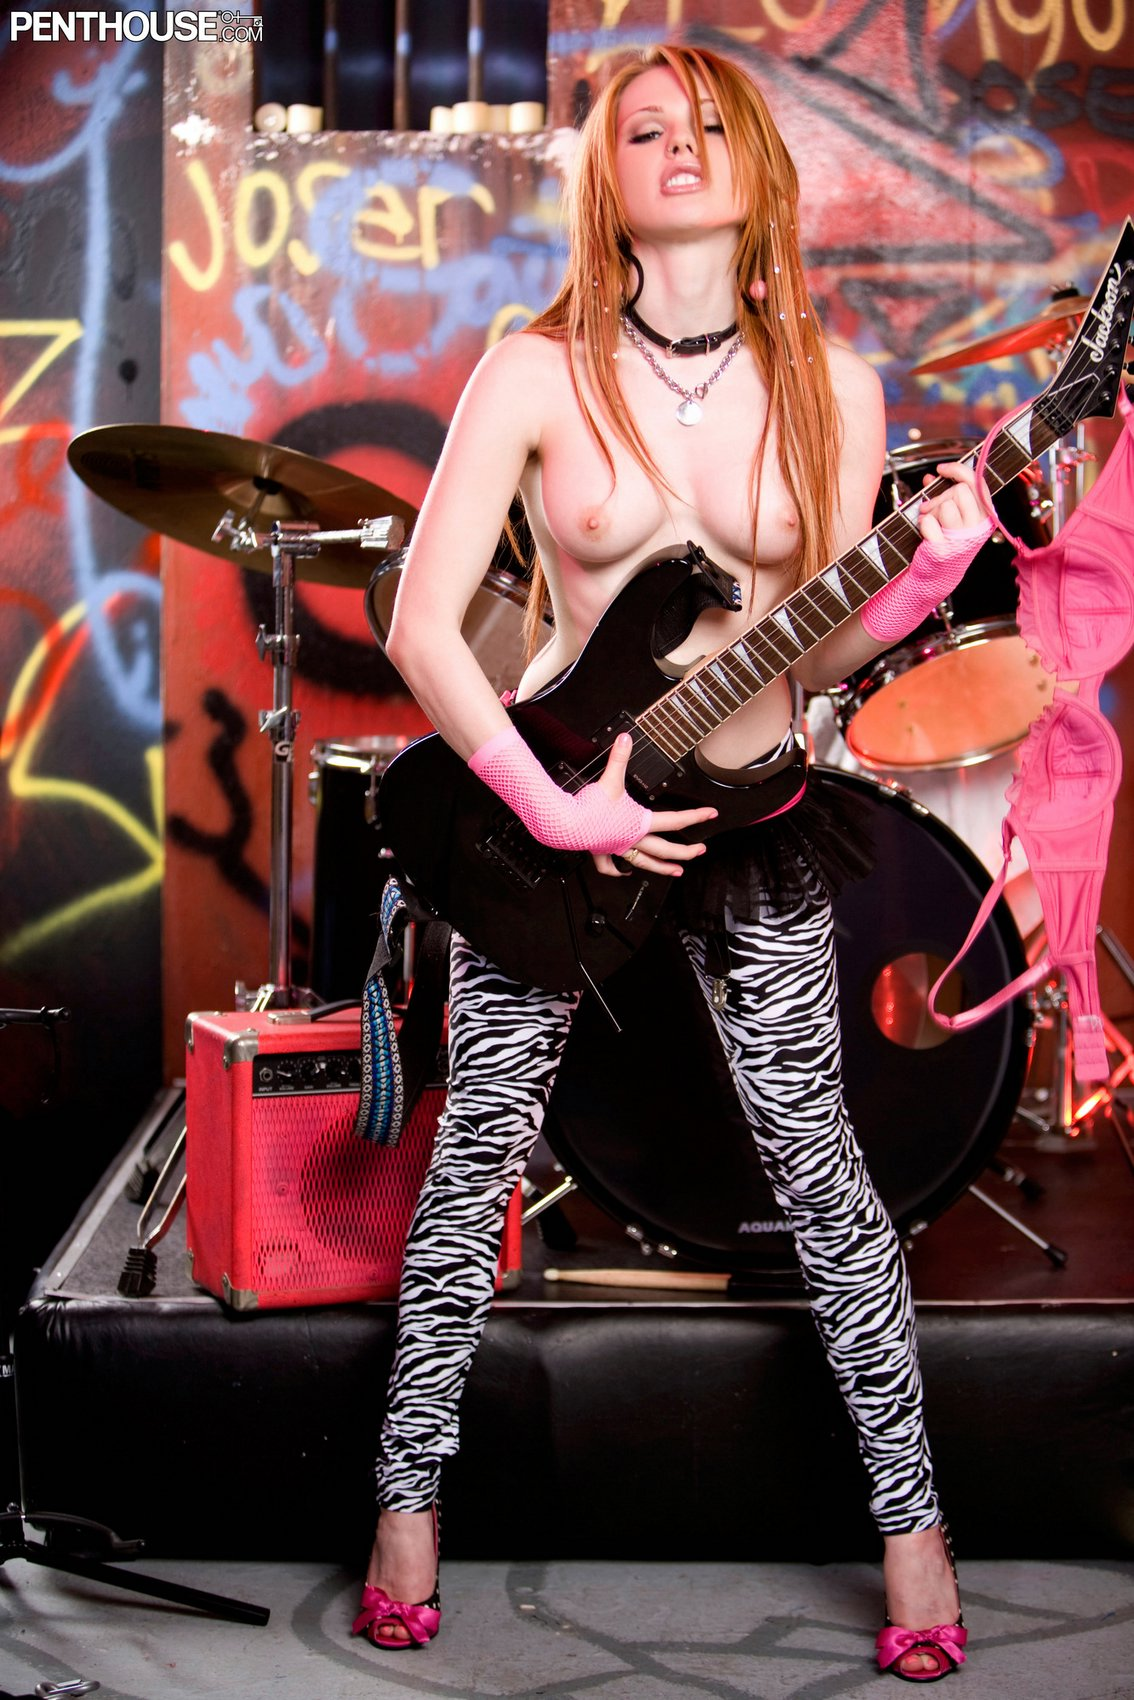 Naked rock n roll girls excellent and